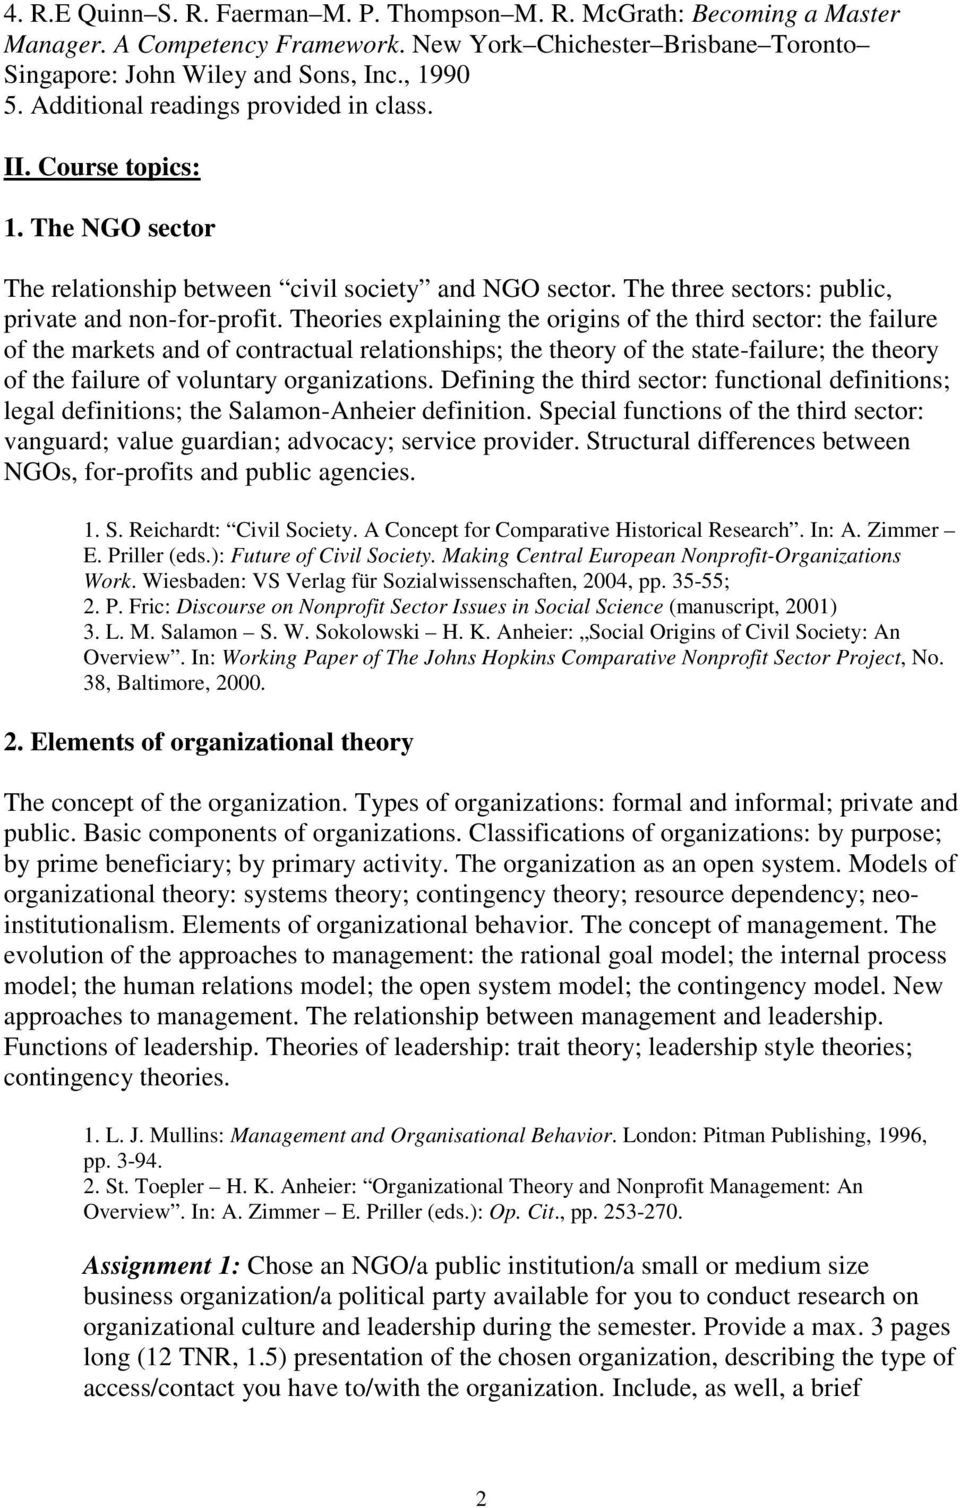 Theories explaining the origins of the third sector: the failure of the markets and of contractual relationships; the theory of the state-failure; the theory of the failure of voluntary organizations.